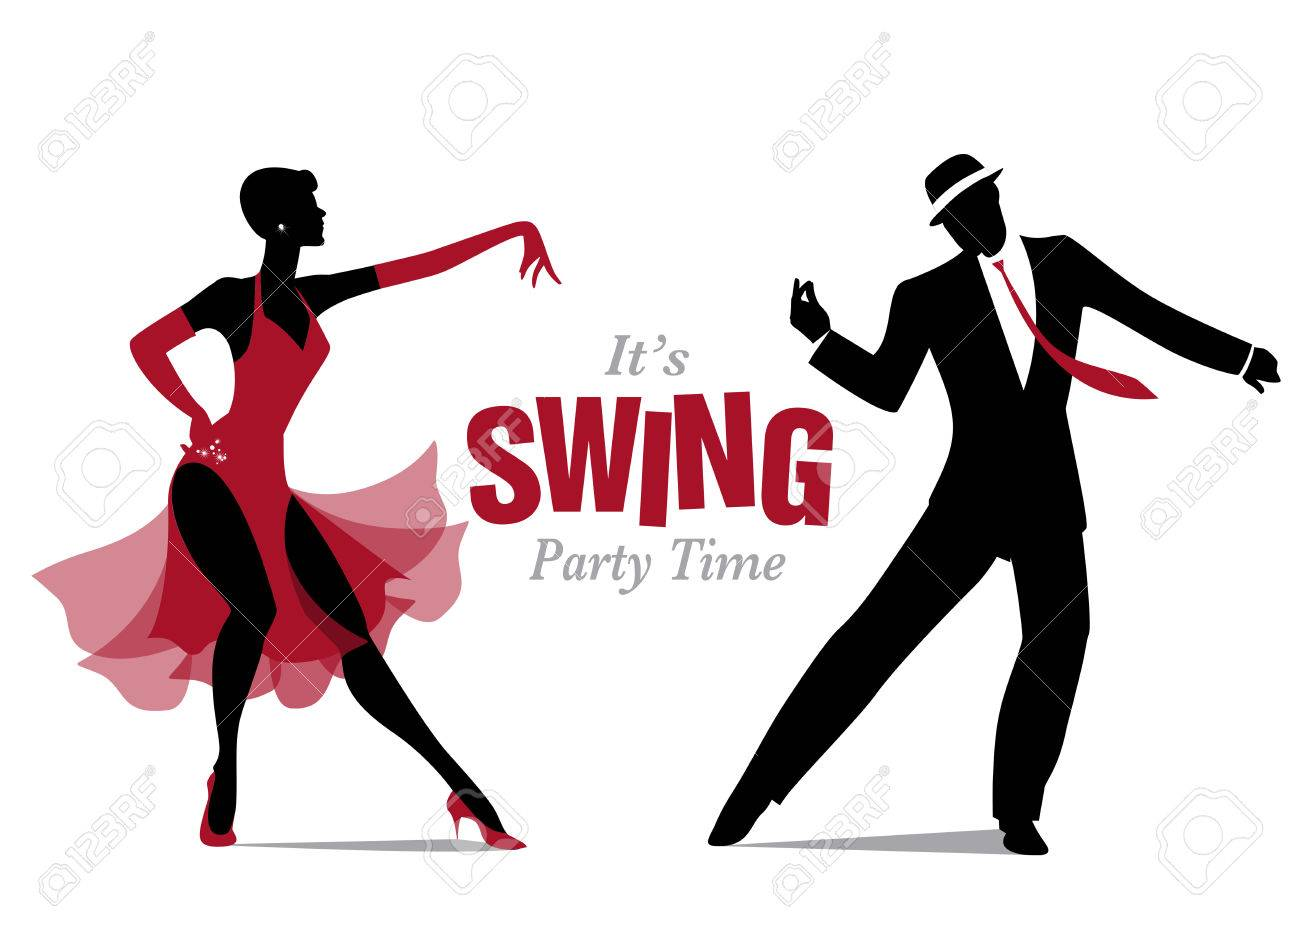 Elegant Couple Dancing Silhouettes Jazz Or Swing Royalty Free Cliparts Vectors And Stock Illustration Image 66755822